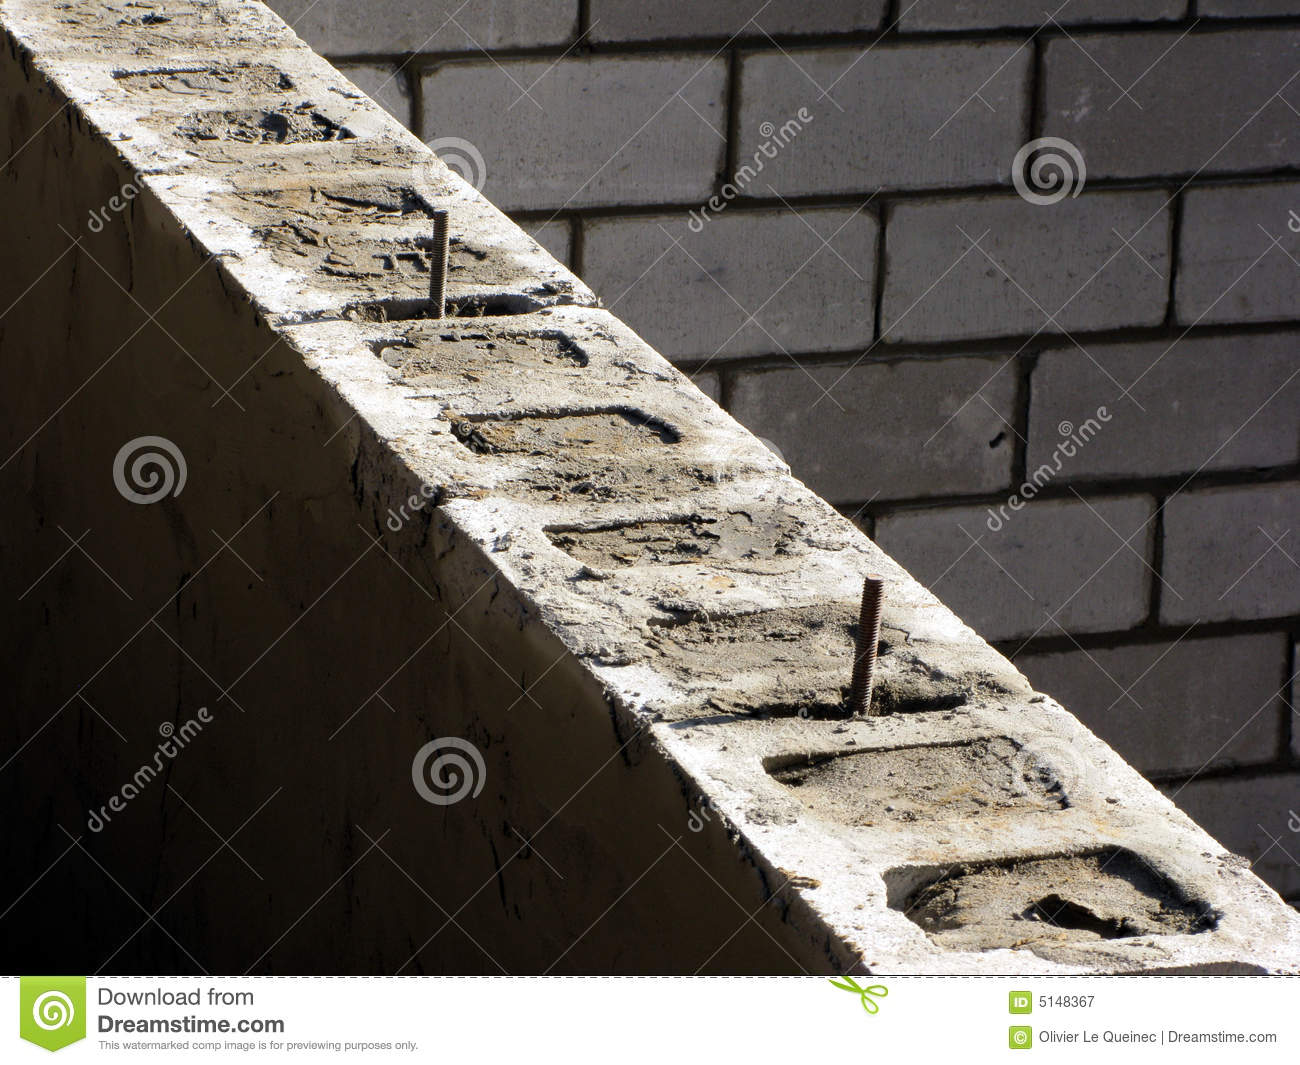 Cinder blocks house concrete foundation wall stock image for Block wall foundation